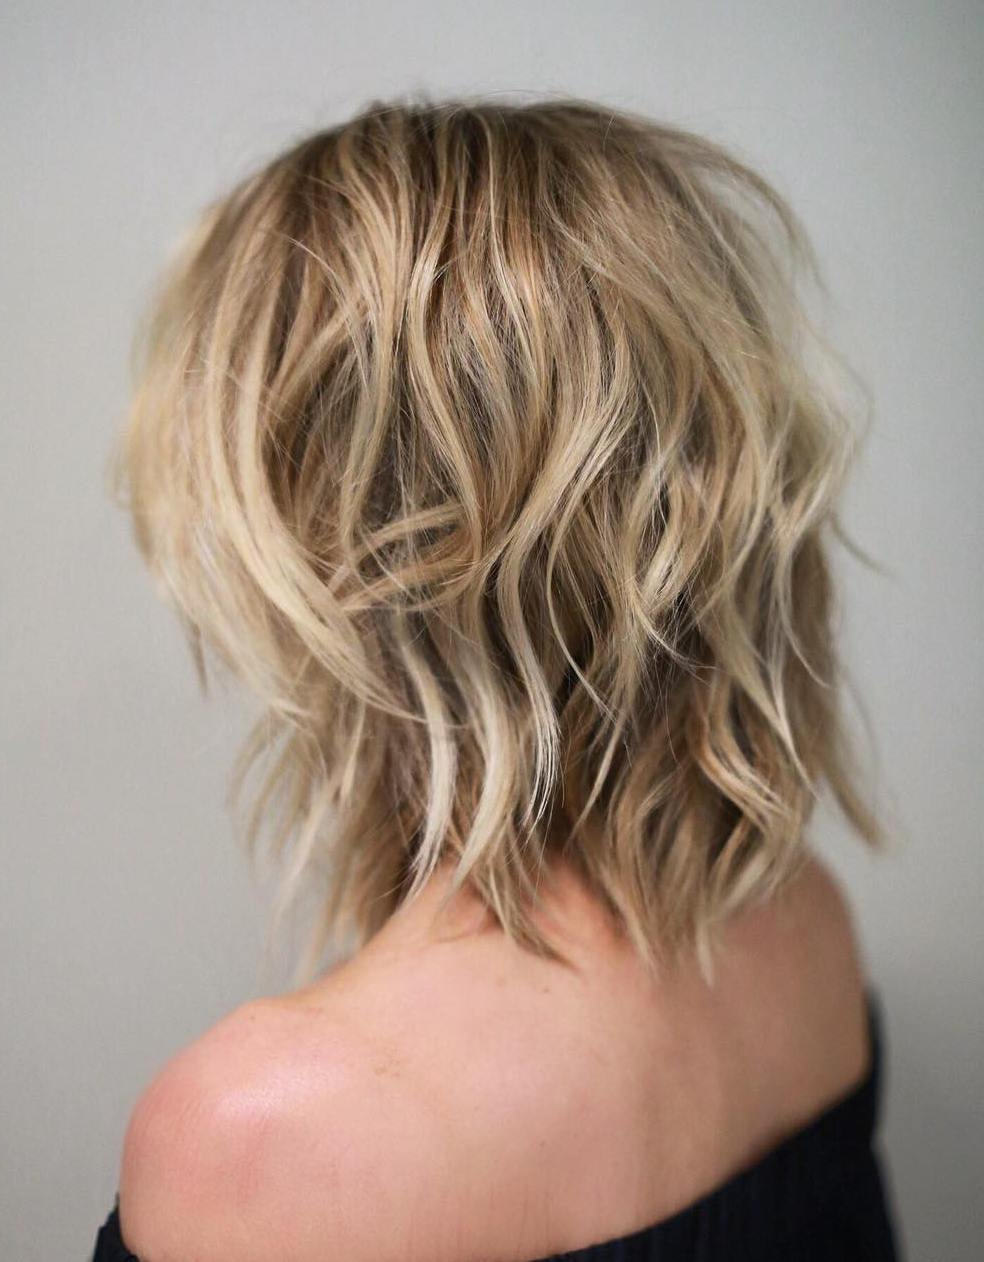 50 Best Variations Of A Medium Shag Haircut For Your Distinctive Style Pertaining To Most Recent Mid Length Two Tier Haircuts For Thick Hair (View 7 of 20)